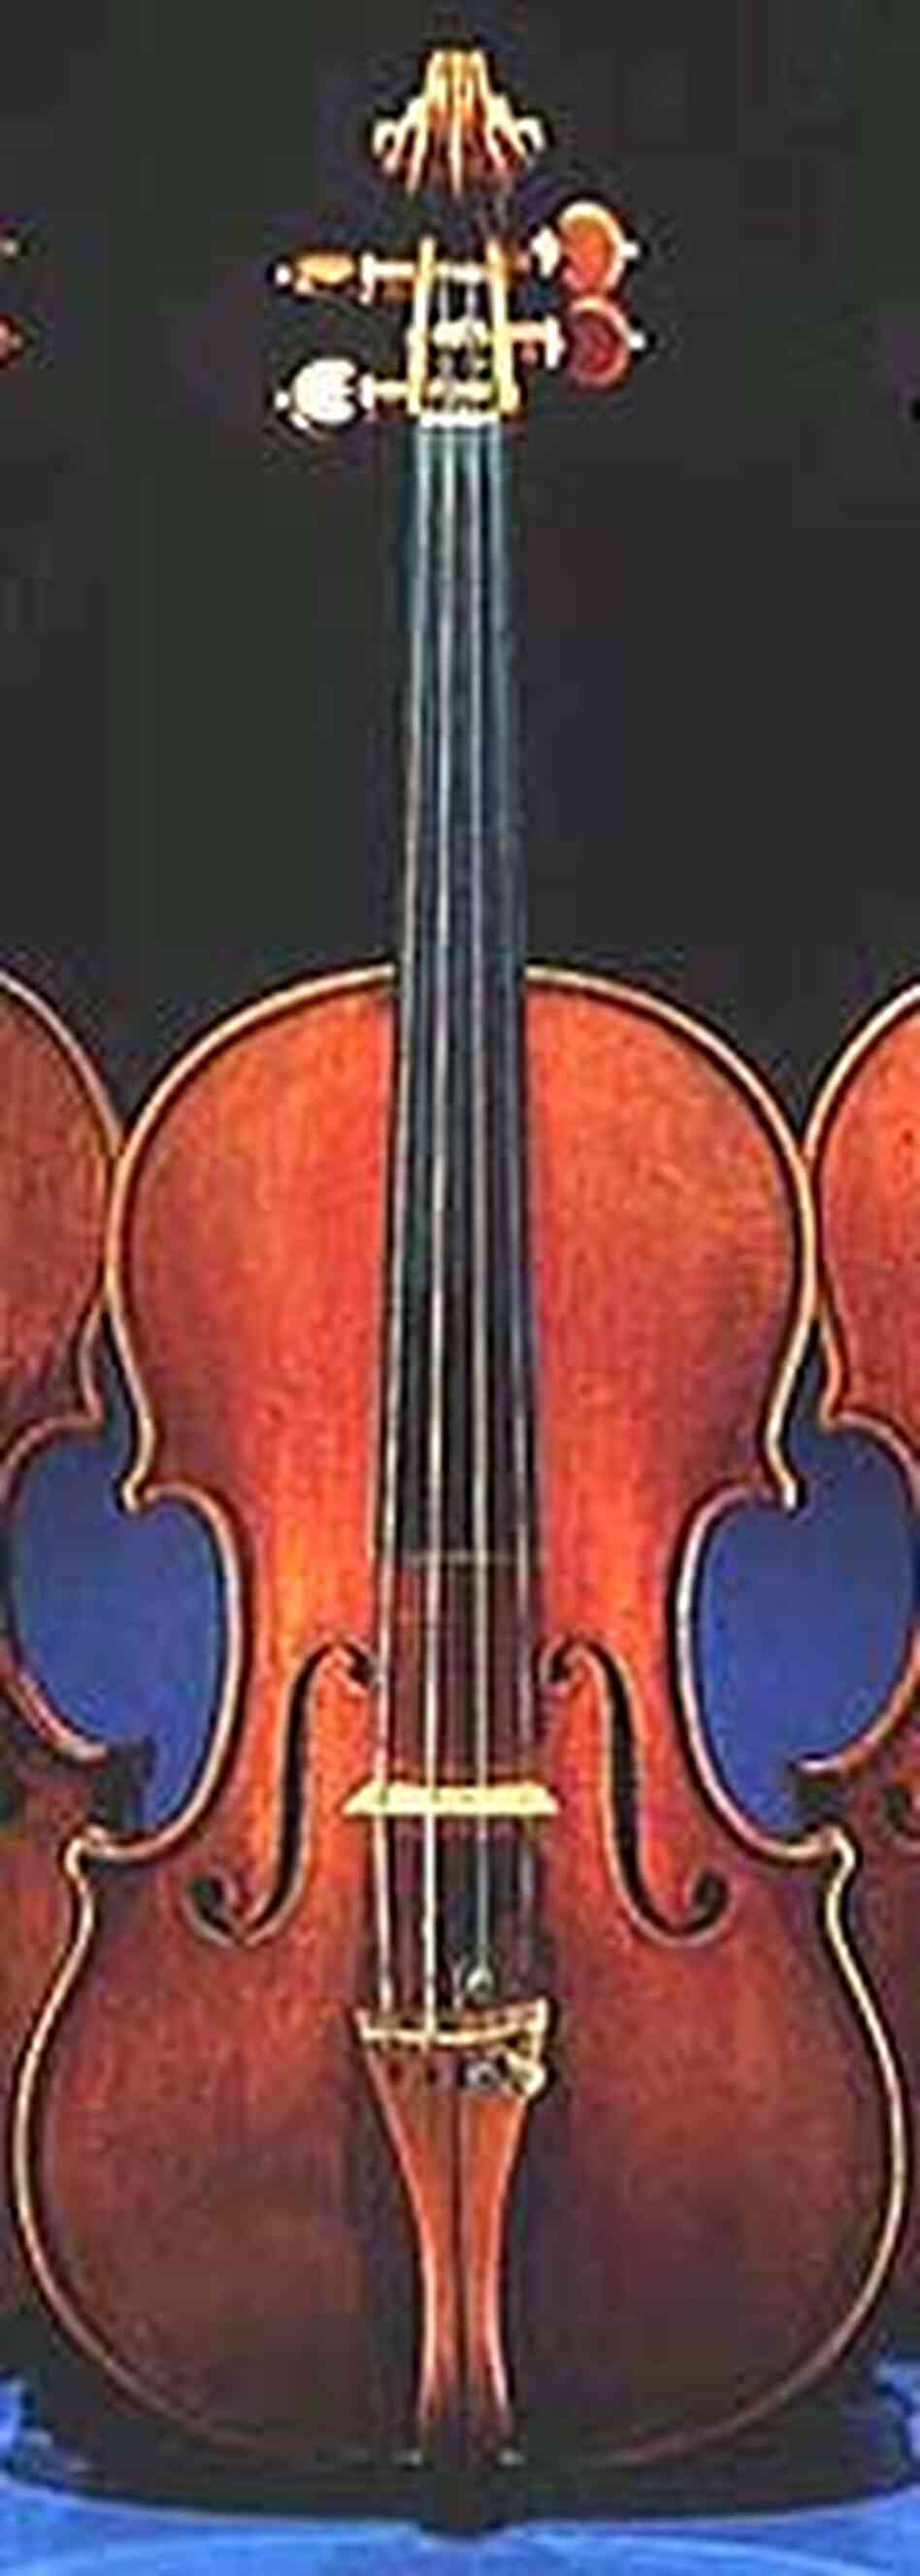 The 'Betts' violin